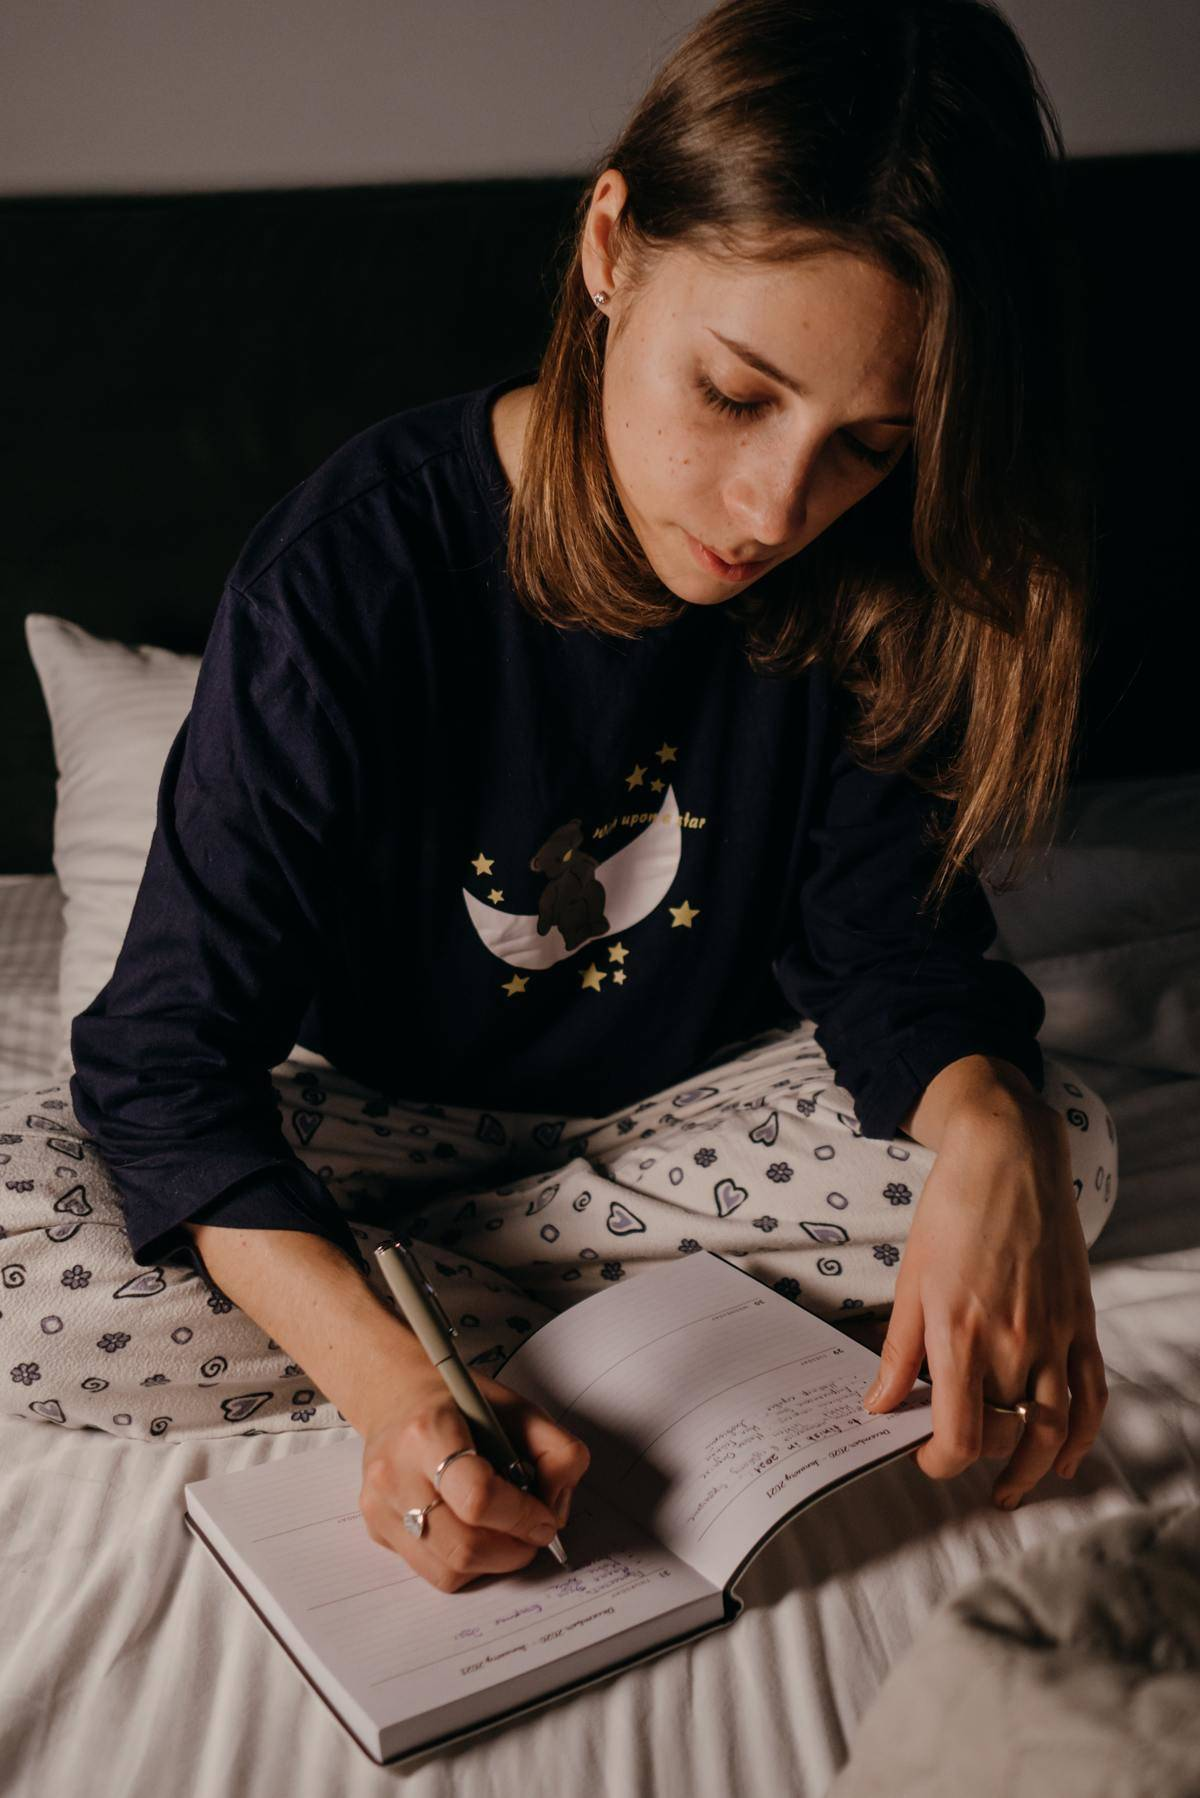 Woman writes in book seated in bed